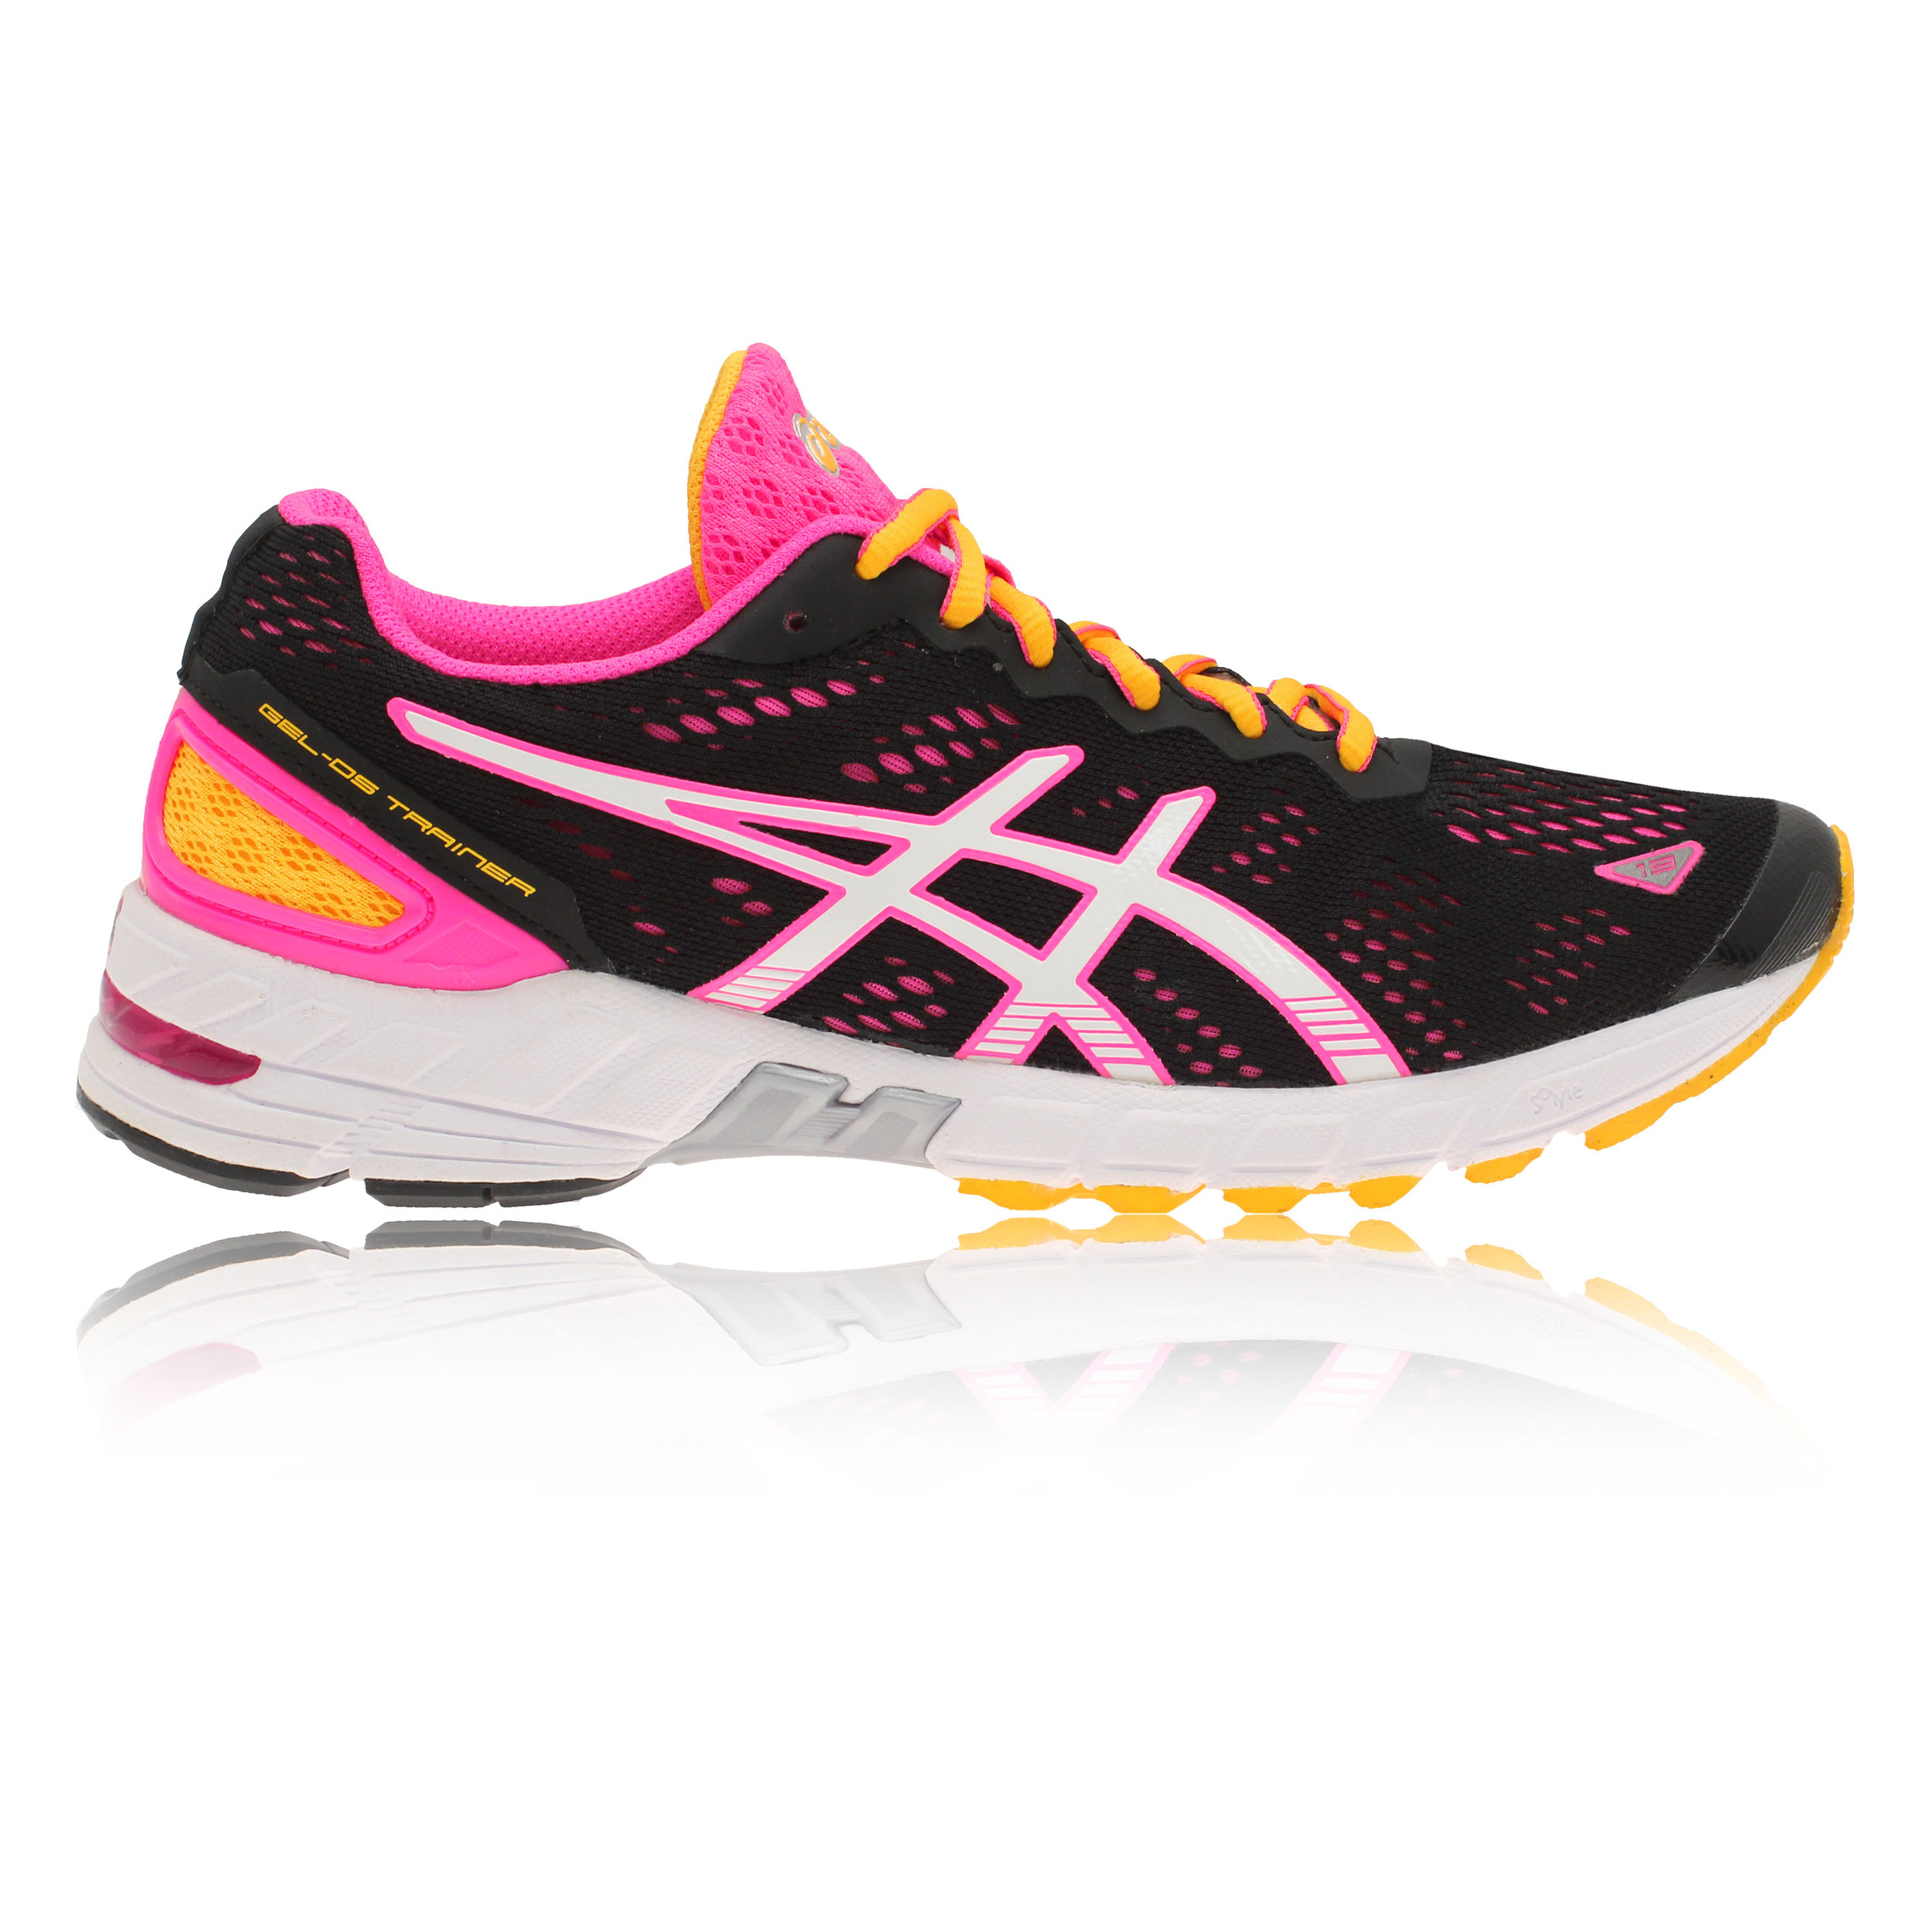 ASICS GEL-DS TRAINER 19 Womens Black Support Road Racing